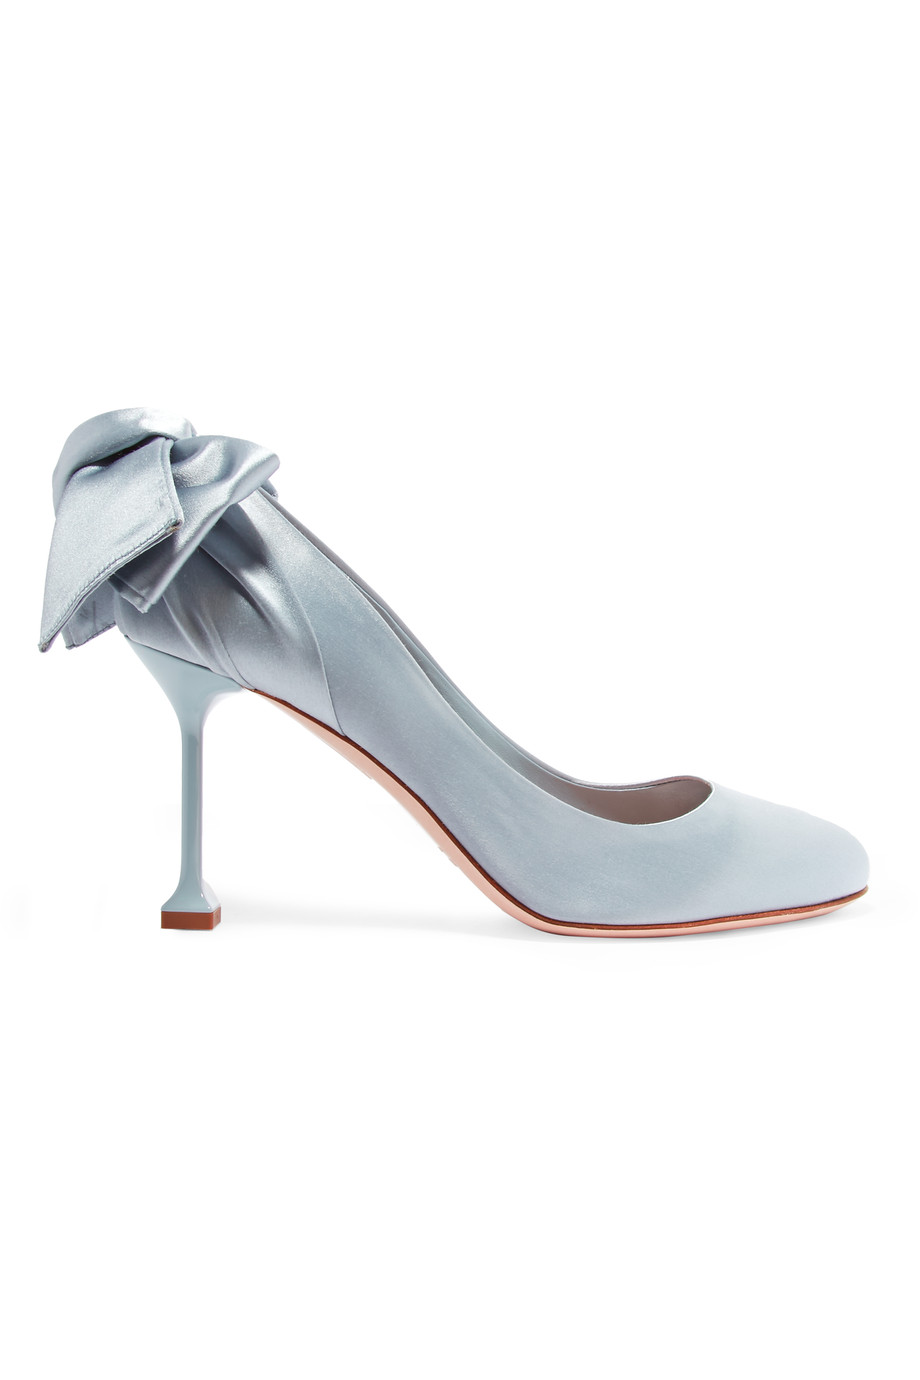 Miu Miu: Bow embellished satin pumps